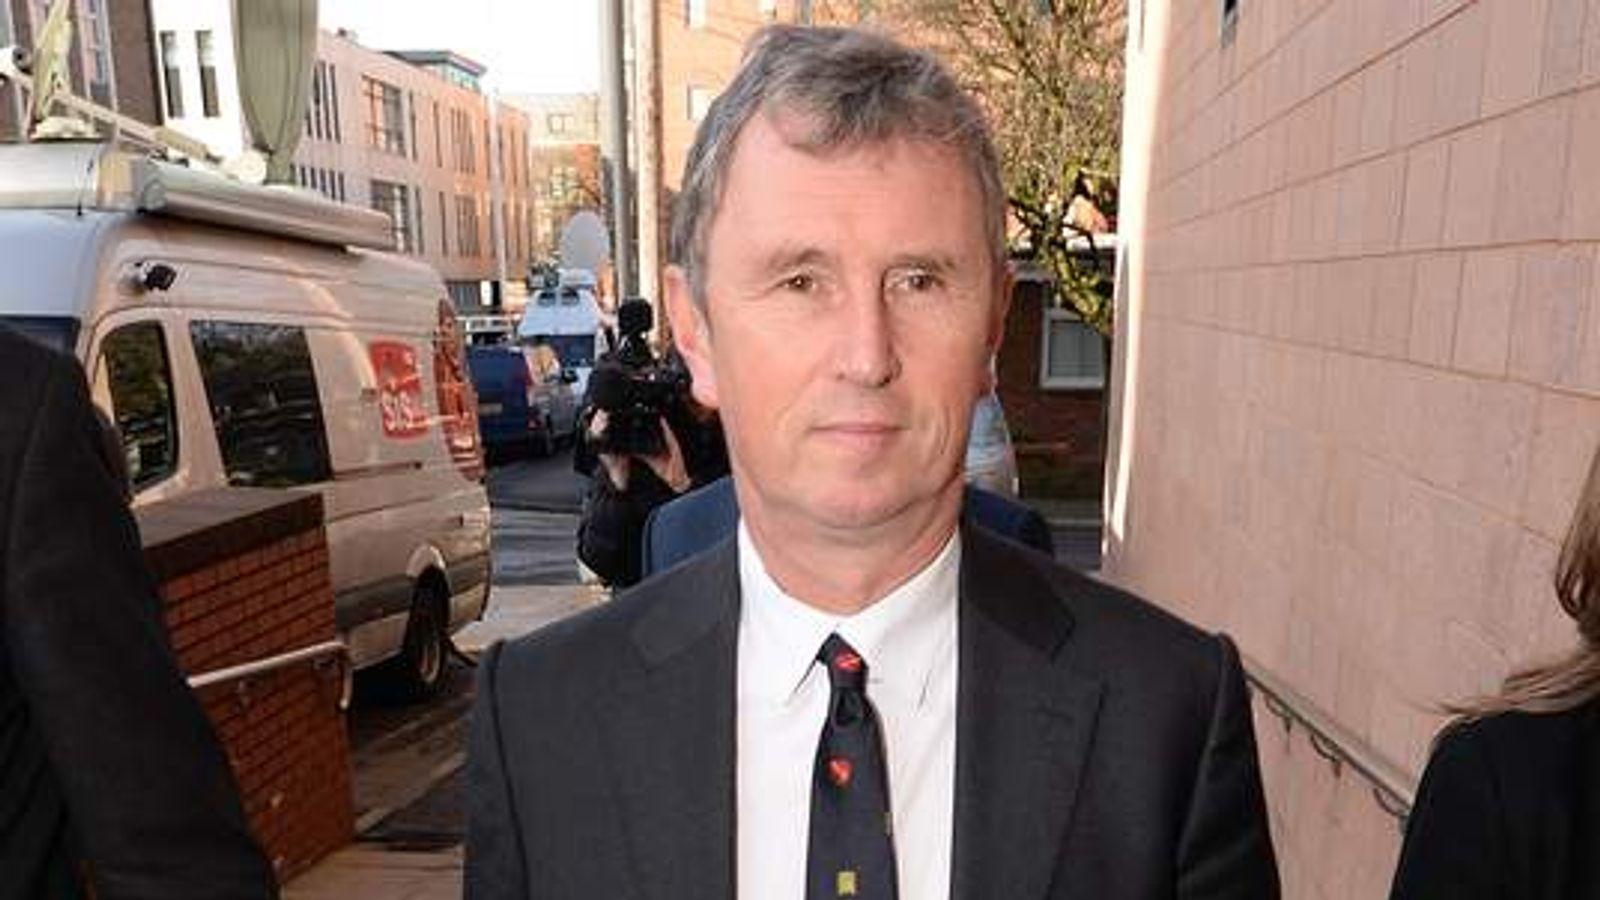 MP Nigel Evans On Trial For Alleged Sex Offence Charges